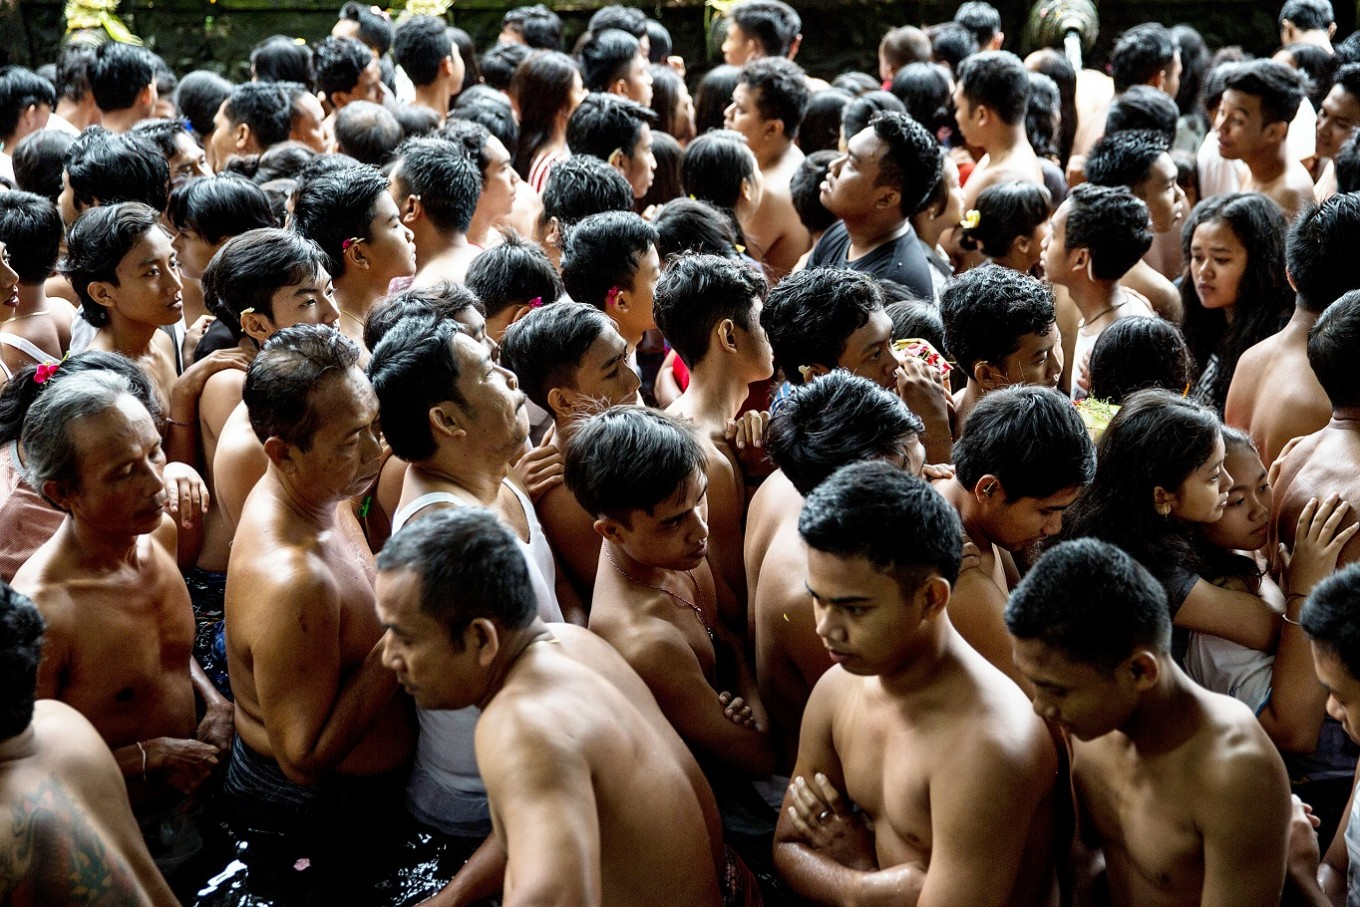 Waiting game: Hundreds of Balinese Hindu people queue in a pool at the holy Tirta Empul spring on Jan. 22 in Gianyar, Bali.